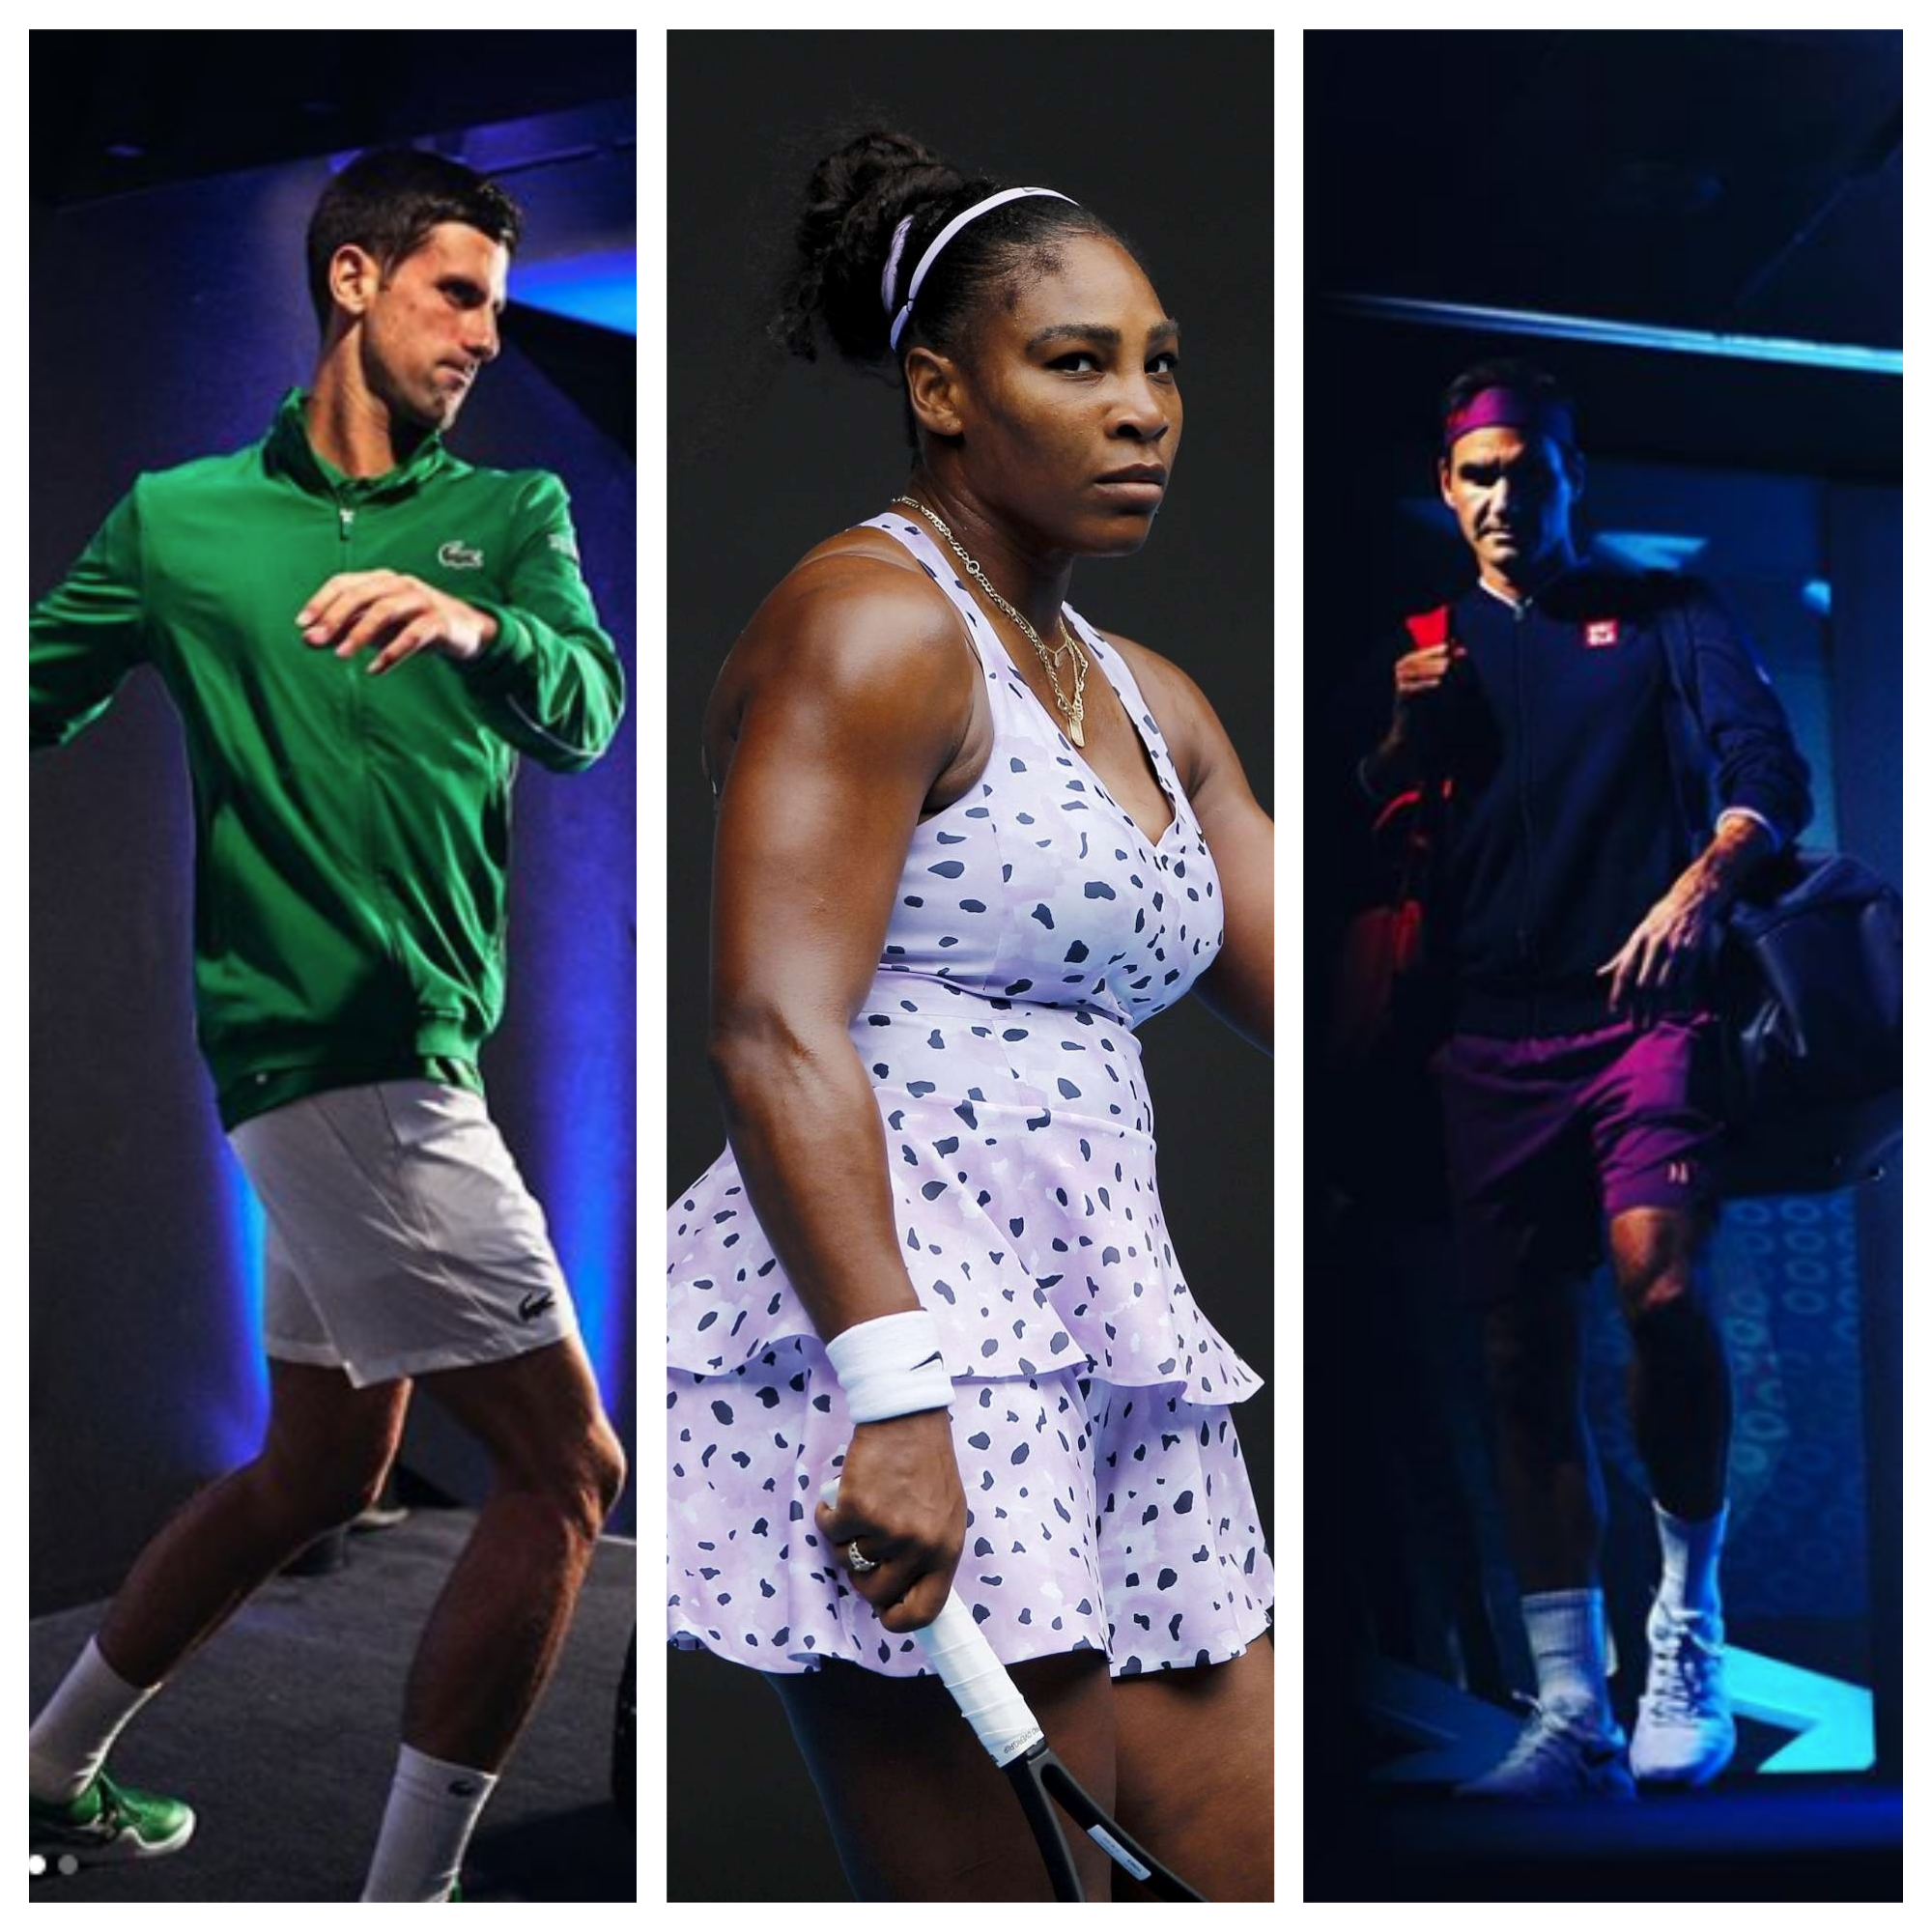 The Best Dressed Men and Women At The 2020 Australian Open!